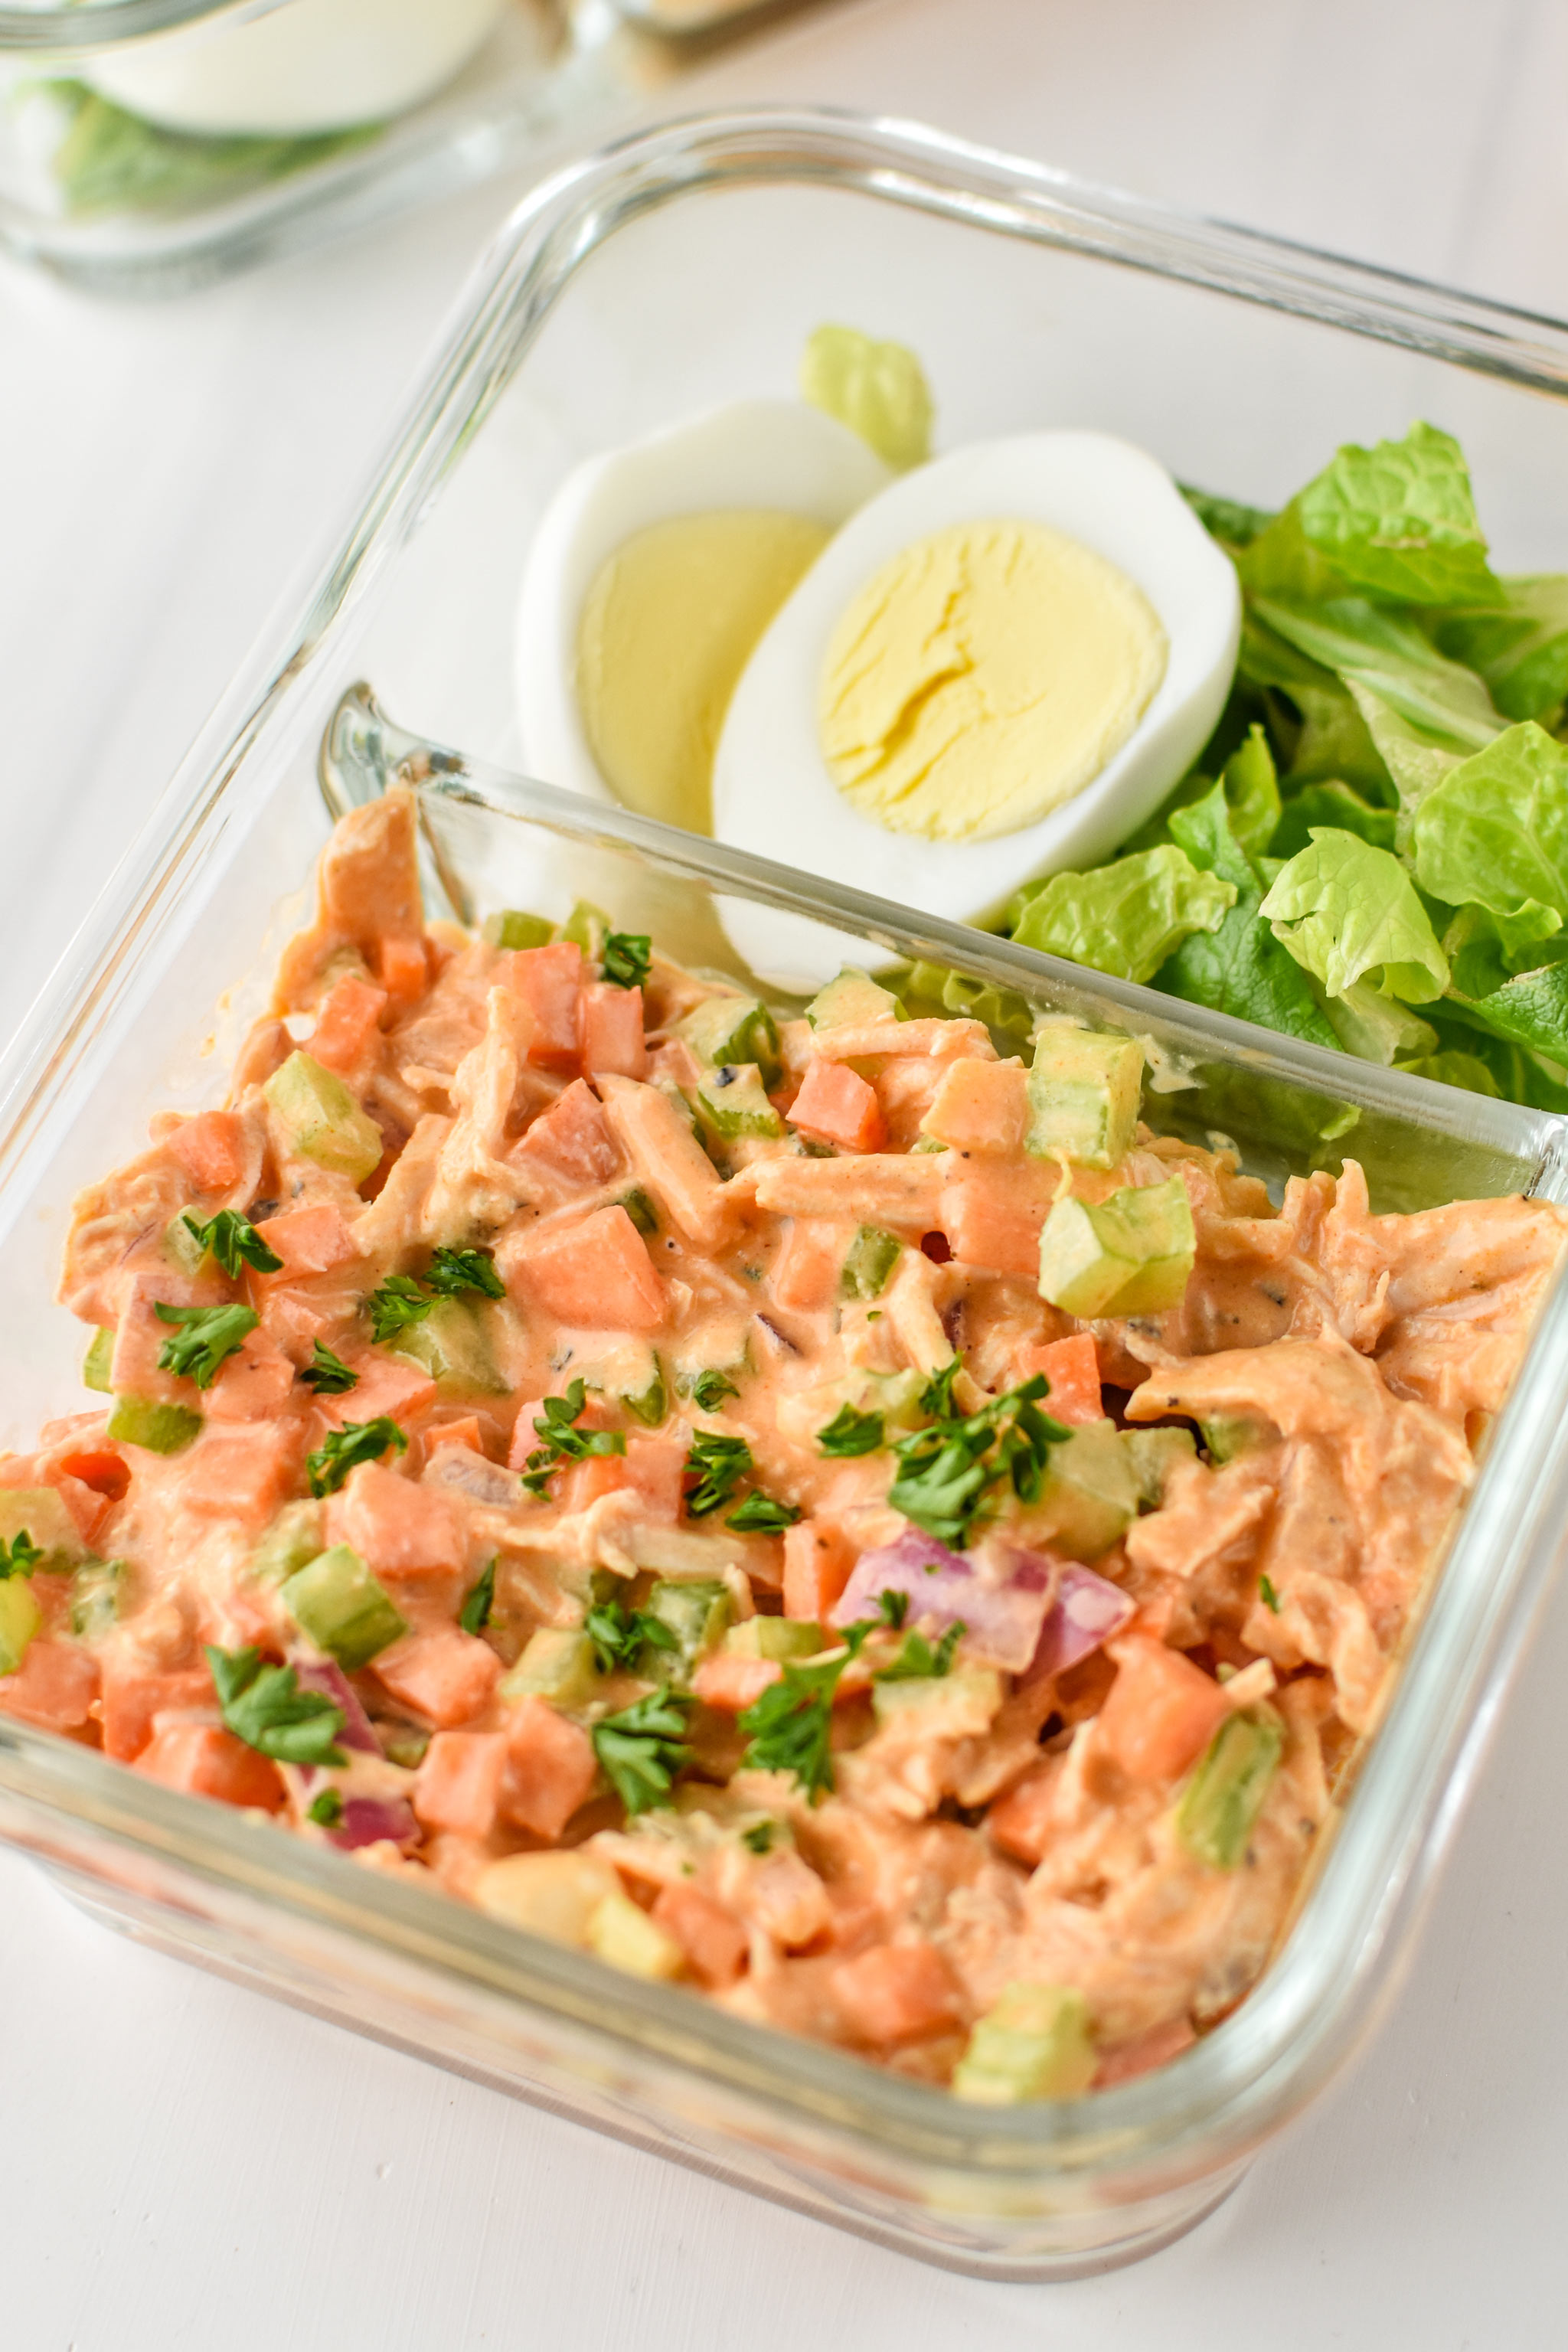 Easy Buffalo Chicken Salad meal prepped with a hard boiled egg and chopped romaine